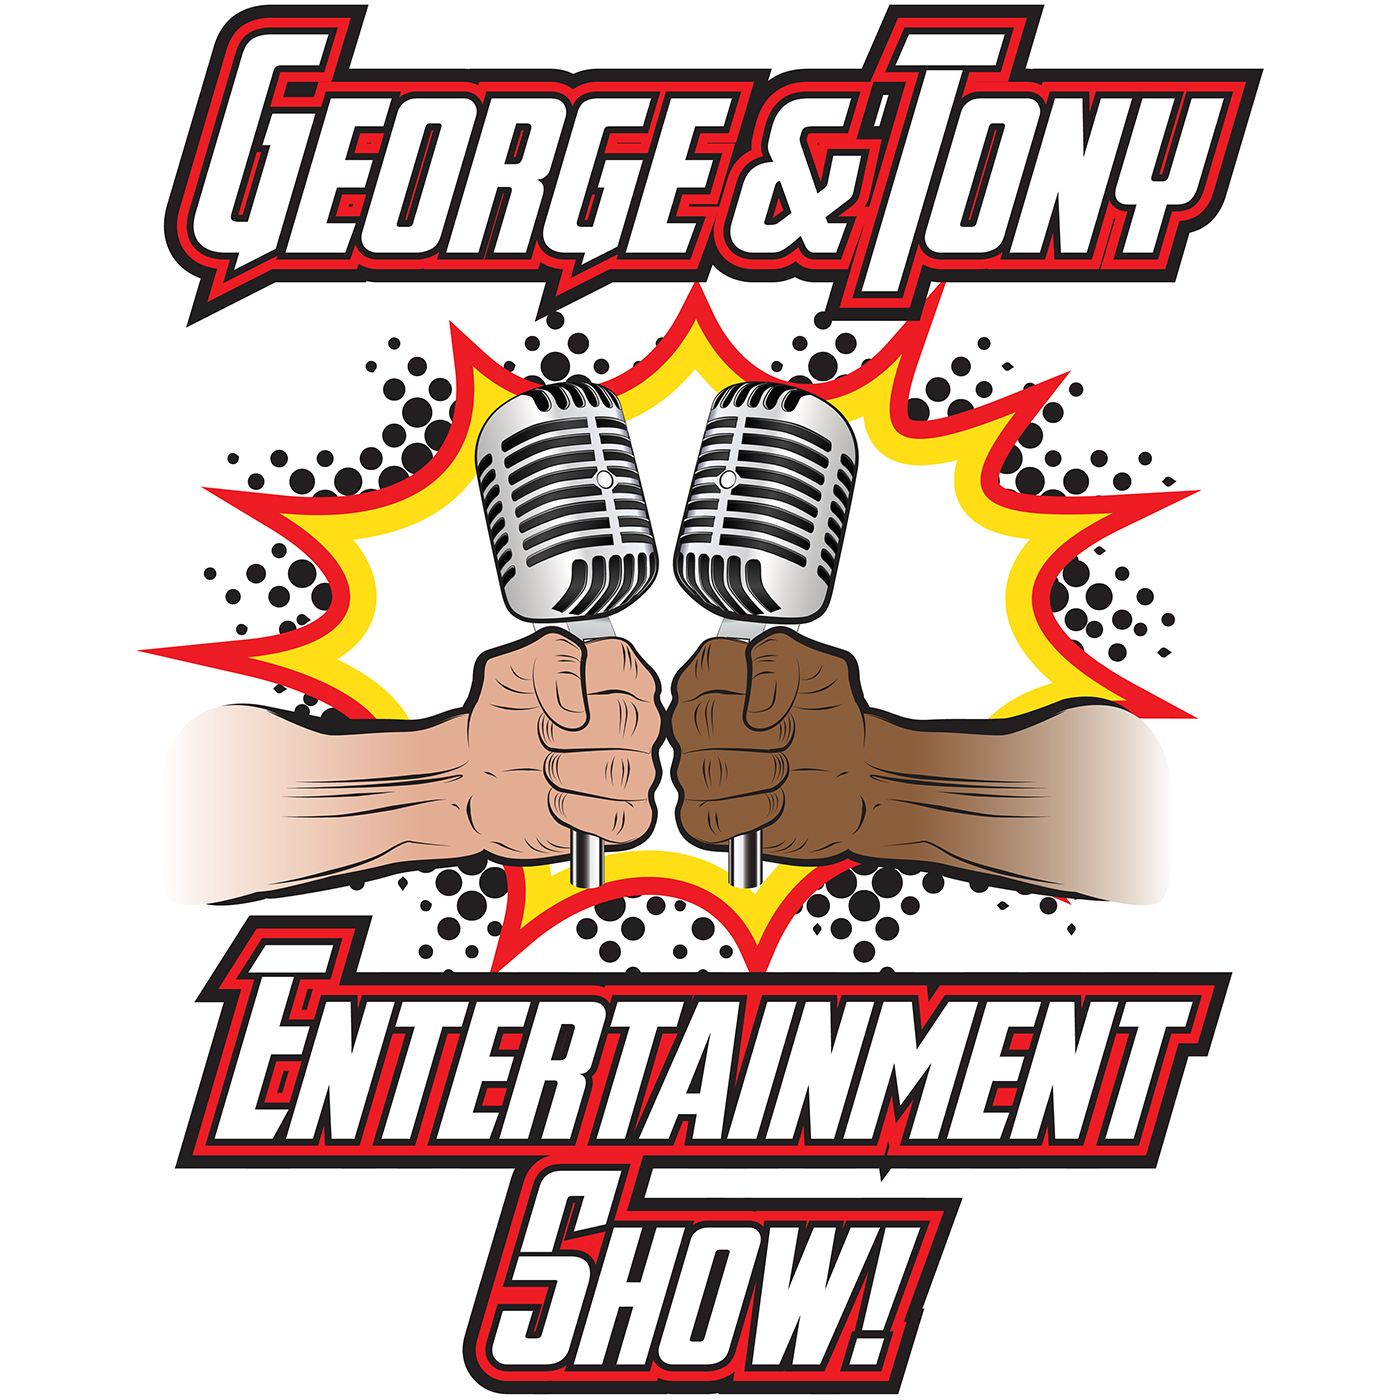 George and Tony Entertainment Show #54